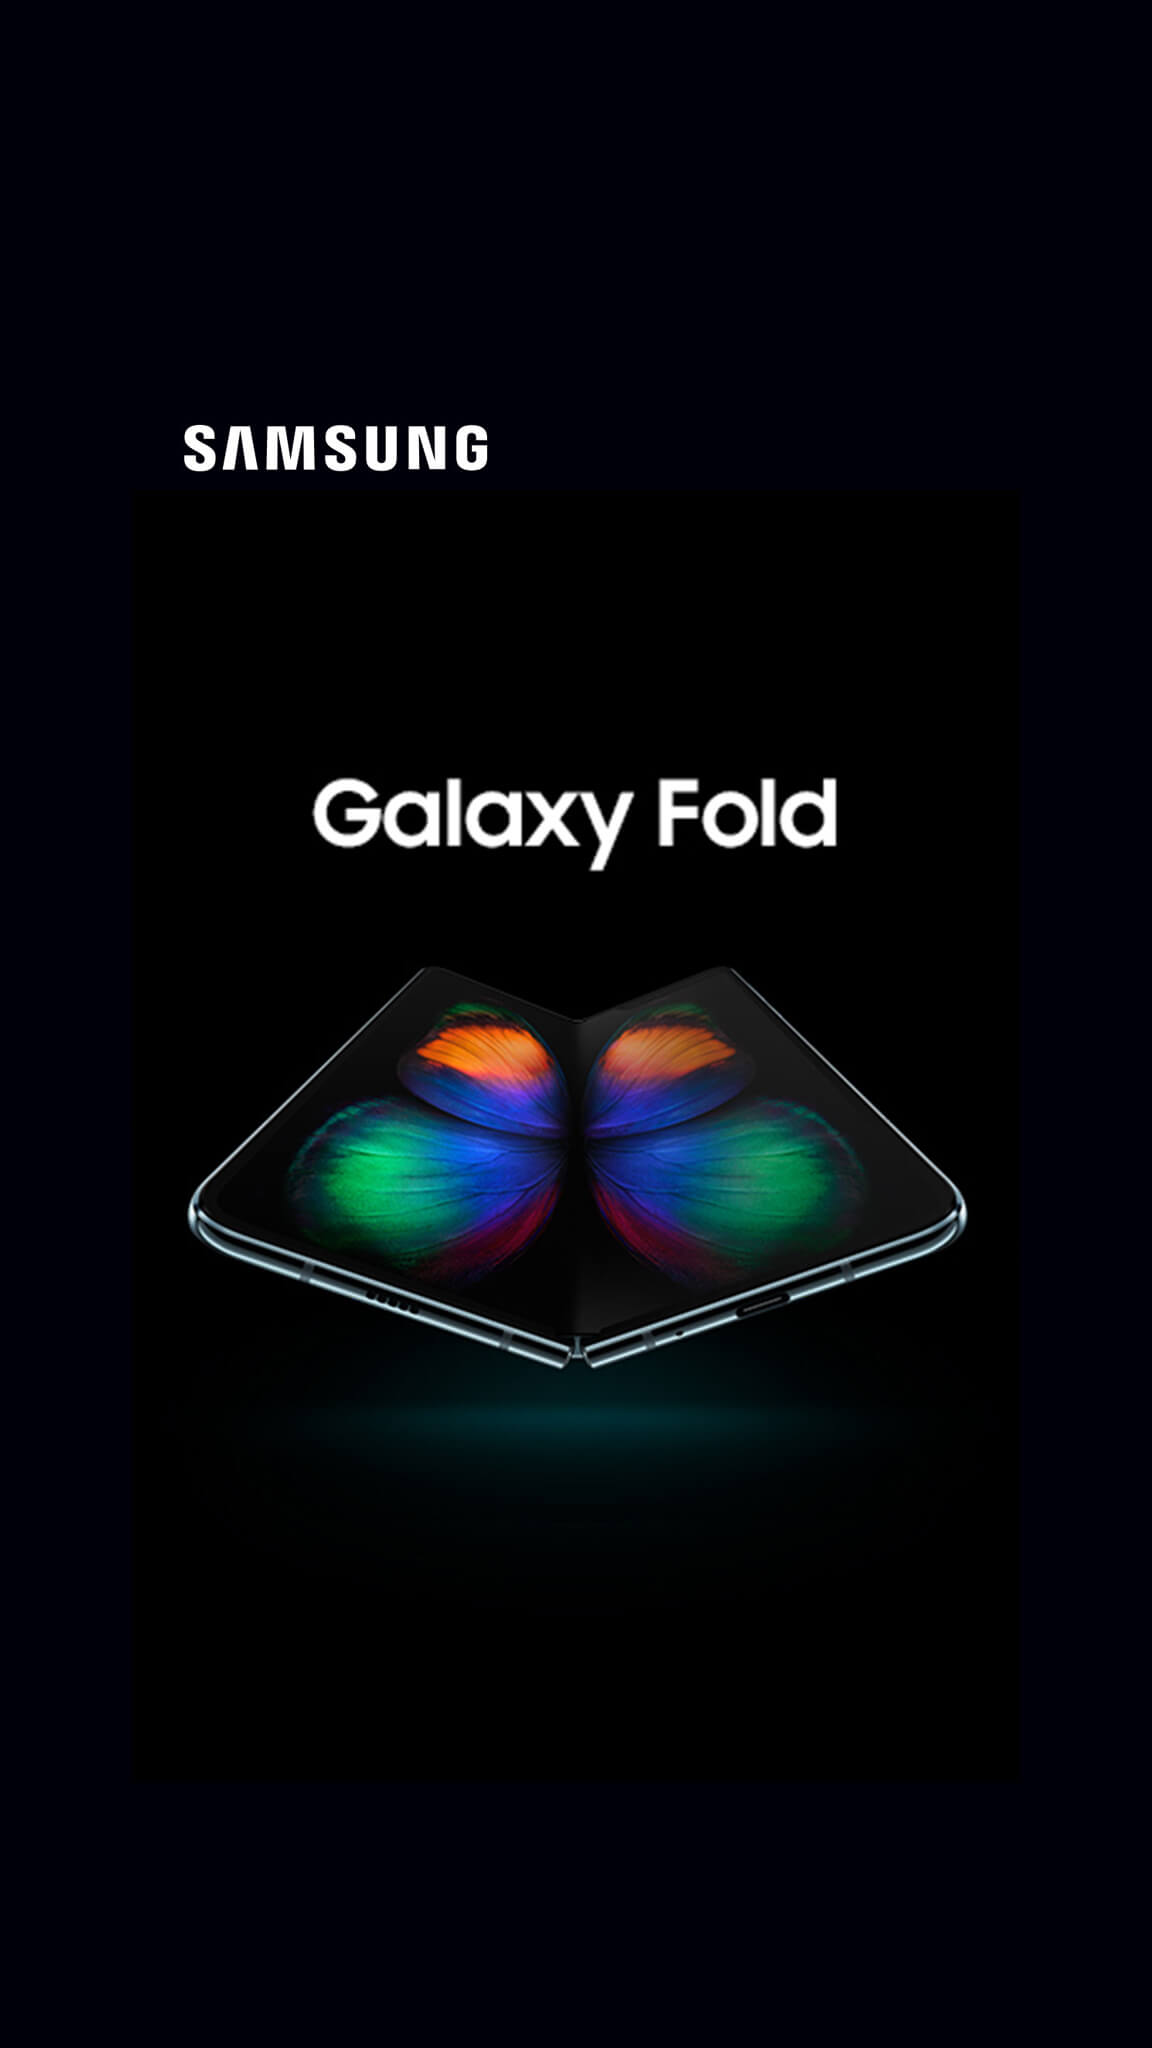 The future unfolds. Samsung Galaxy Fold